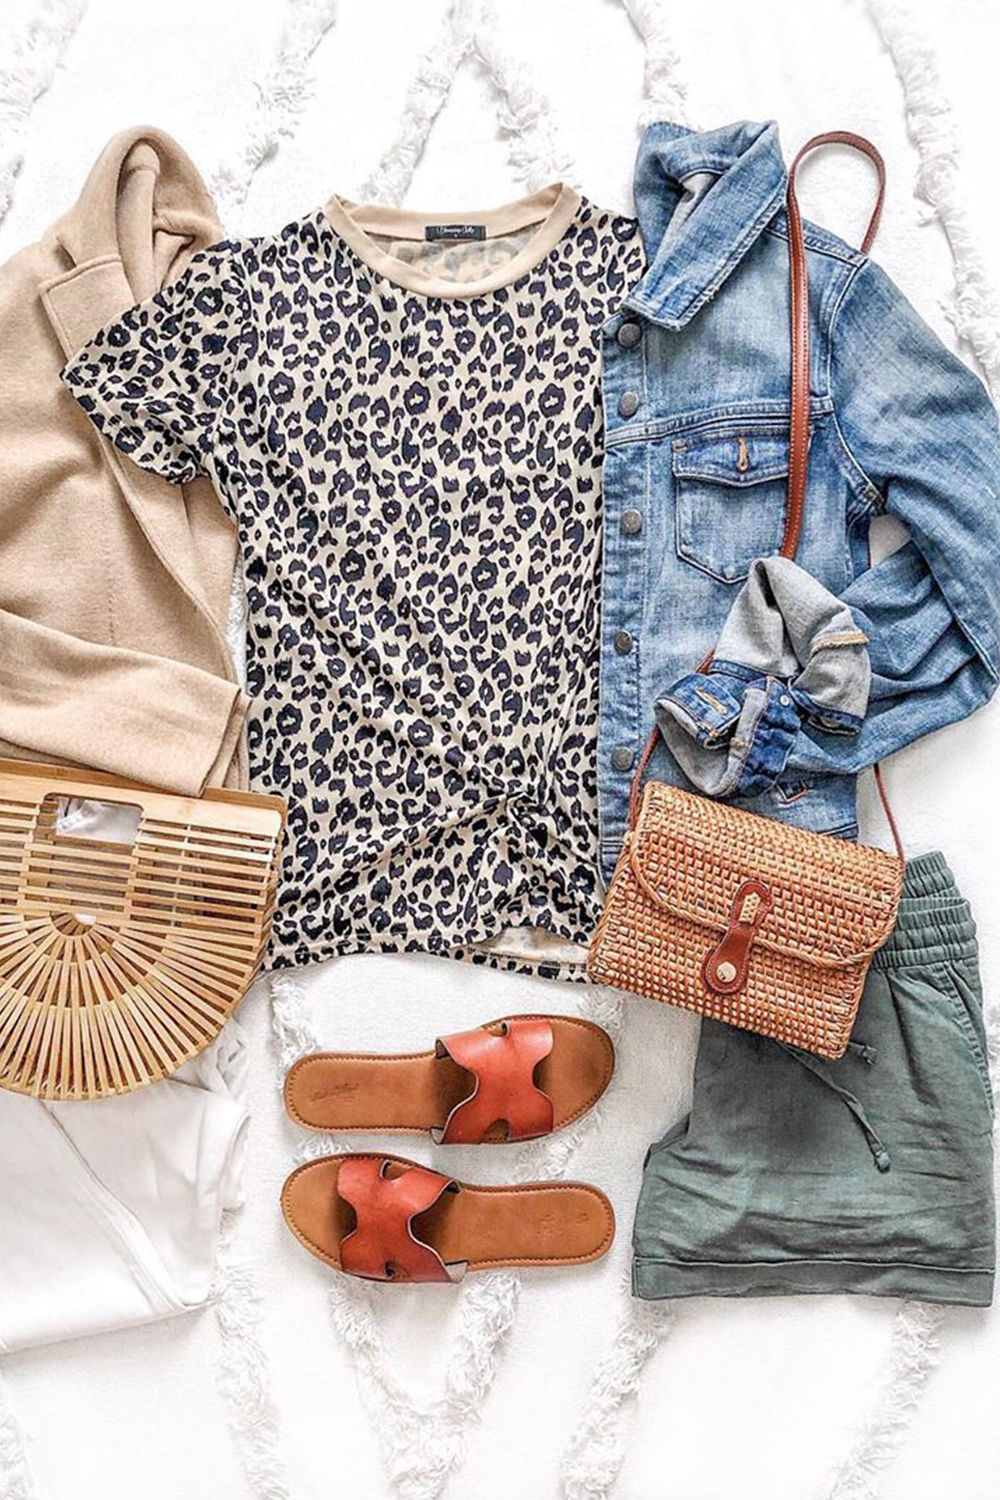 Trendy Style 2020 Women's Outfits Inspiration Leopard Print T Shirt Styling Tips Street Wear Casual